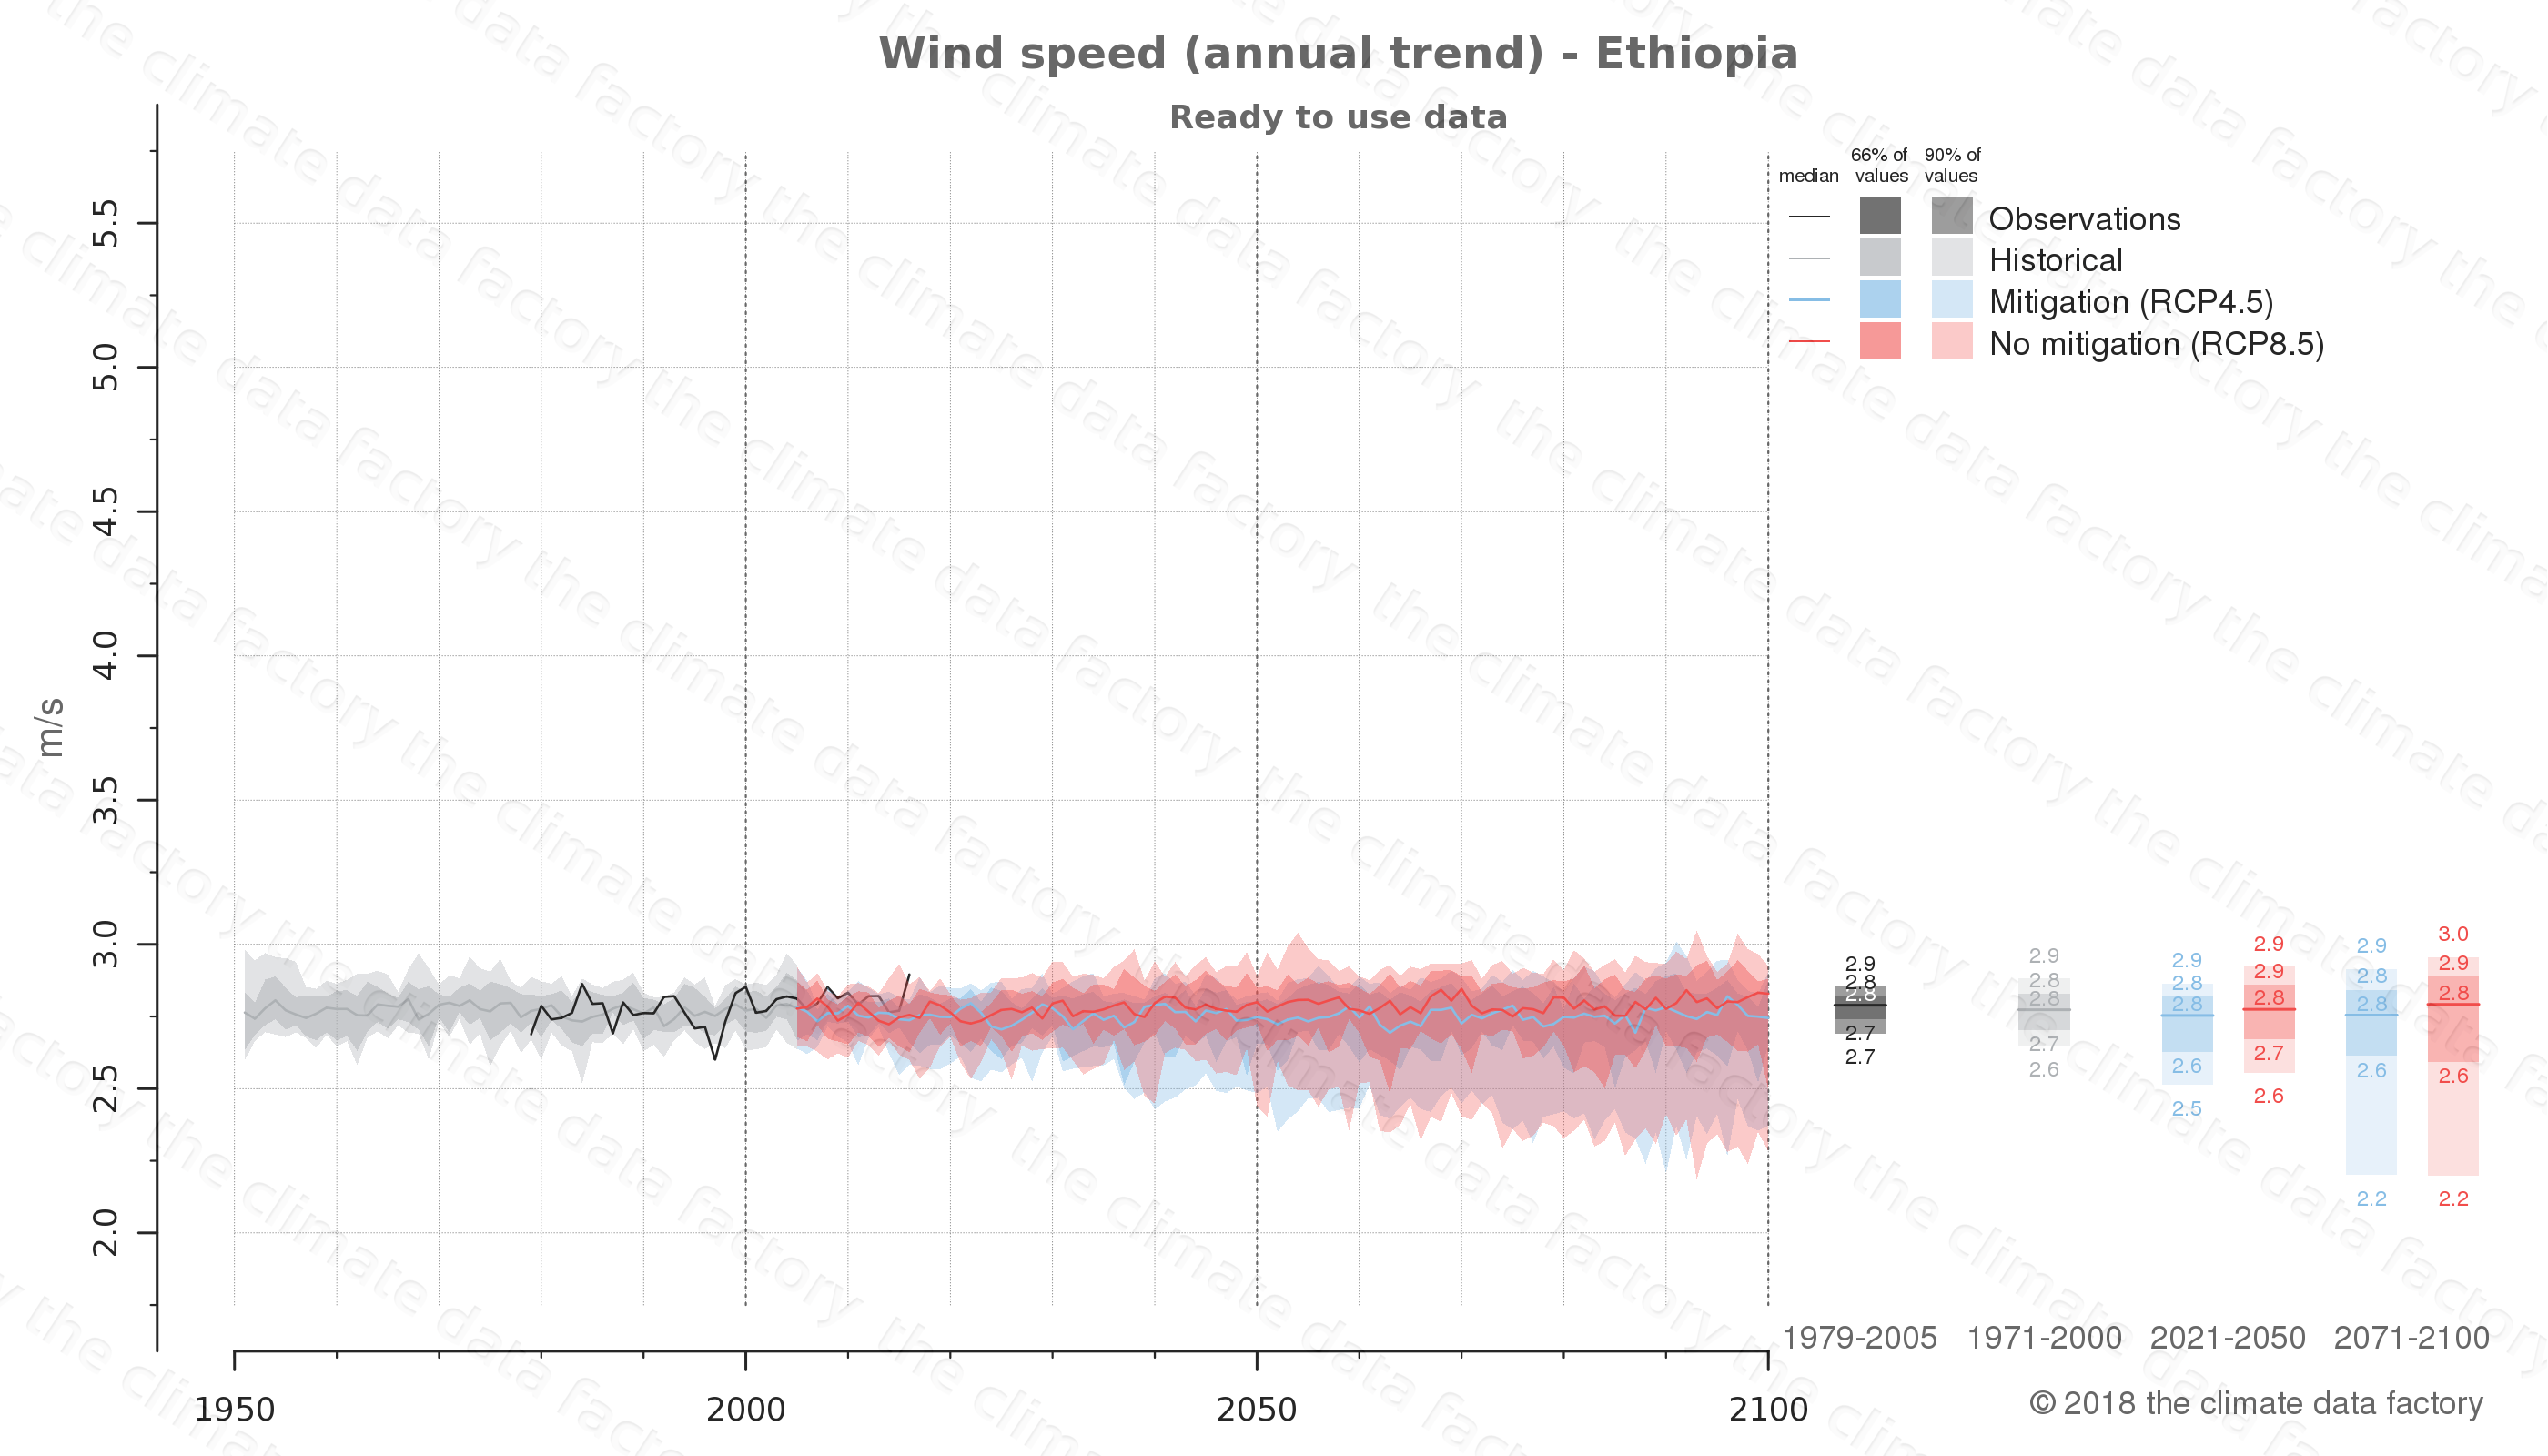 climate change data policy adaptation climate graph country data wind speed ethiopia africa